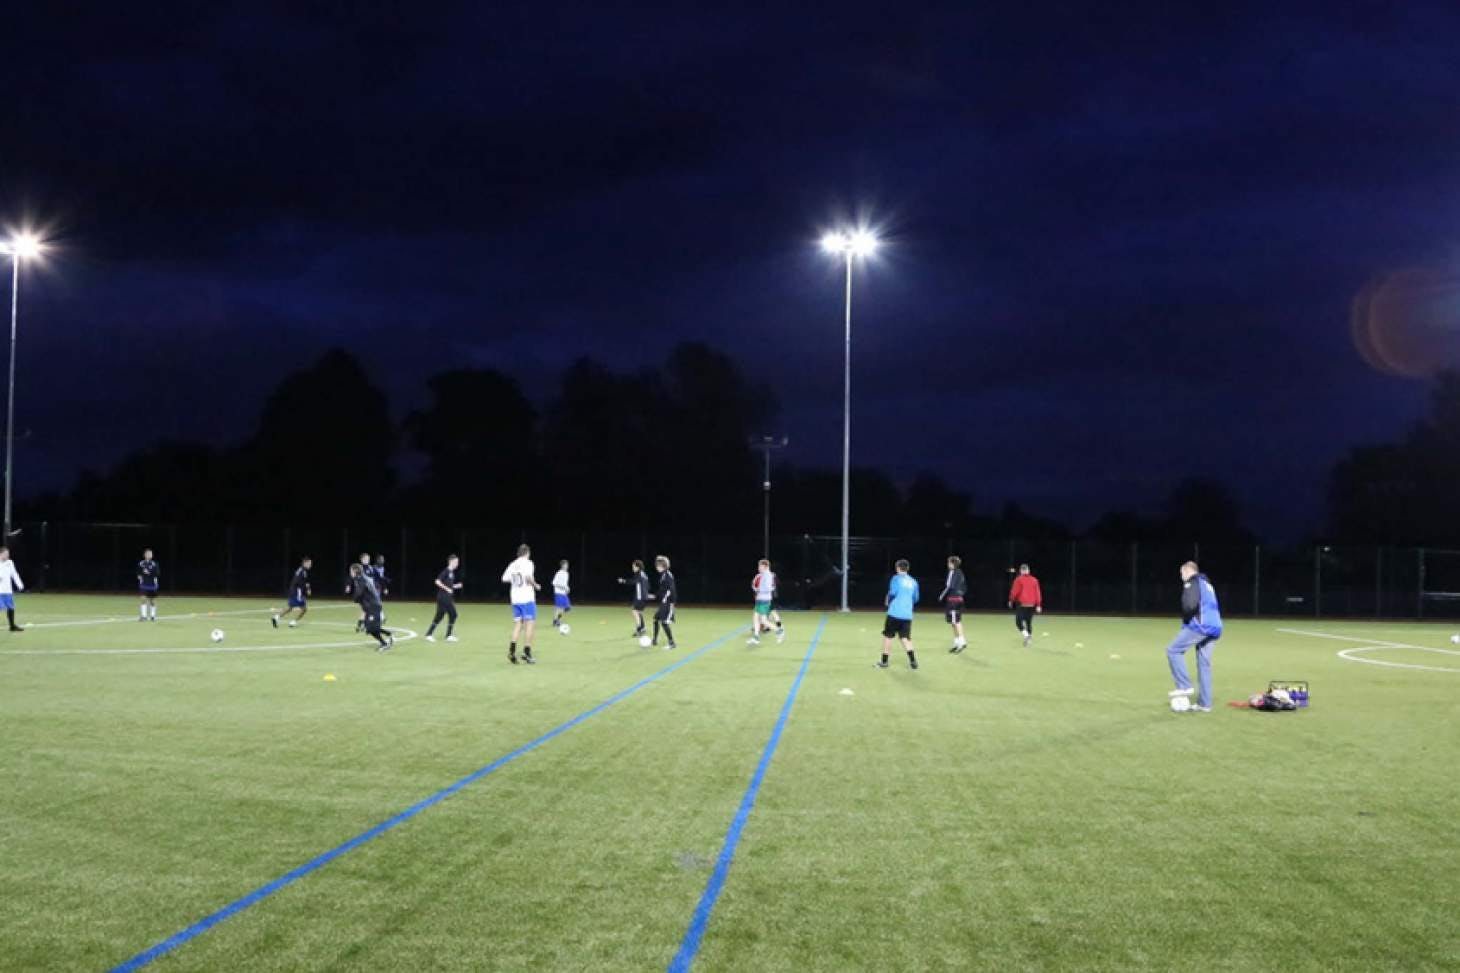 Portslade Sports Centre 11 a side | 3G Astroturf football pitch